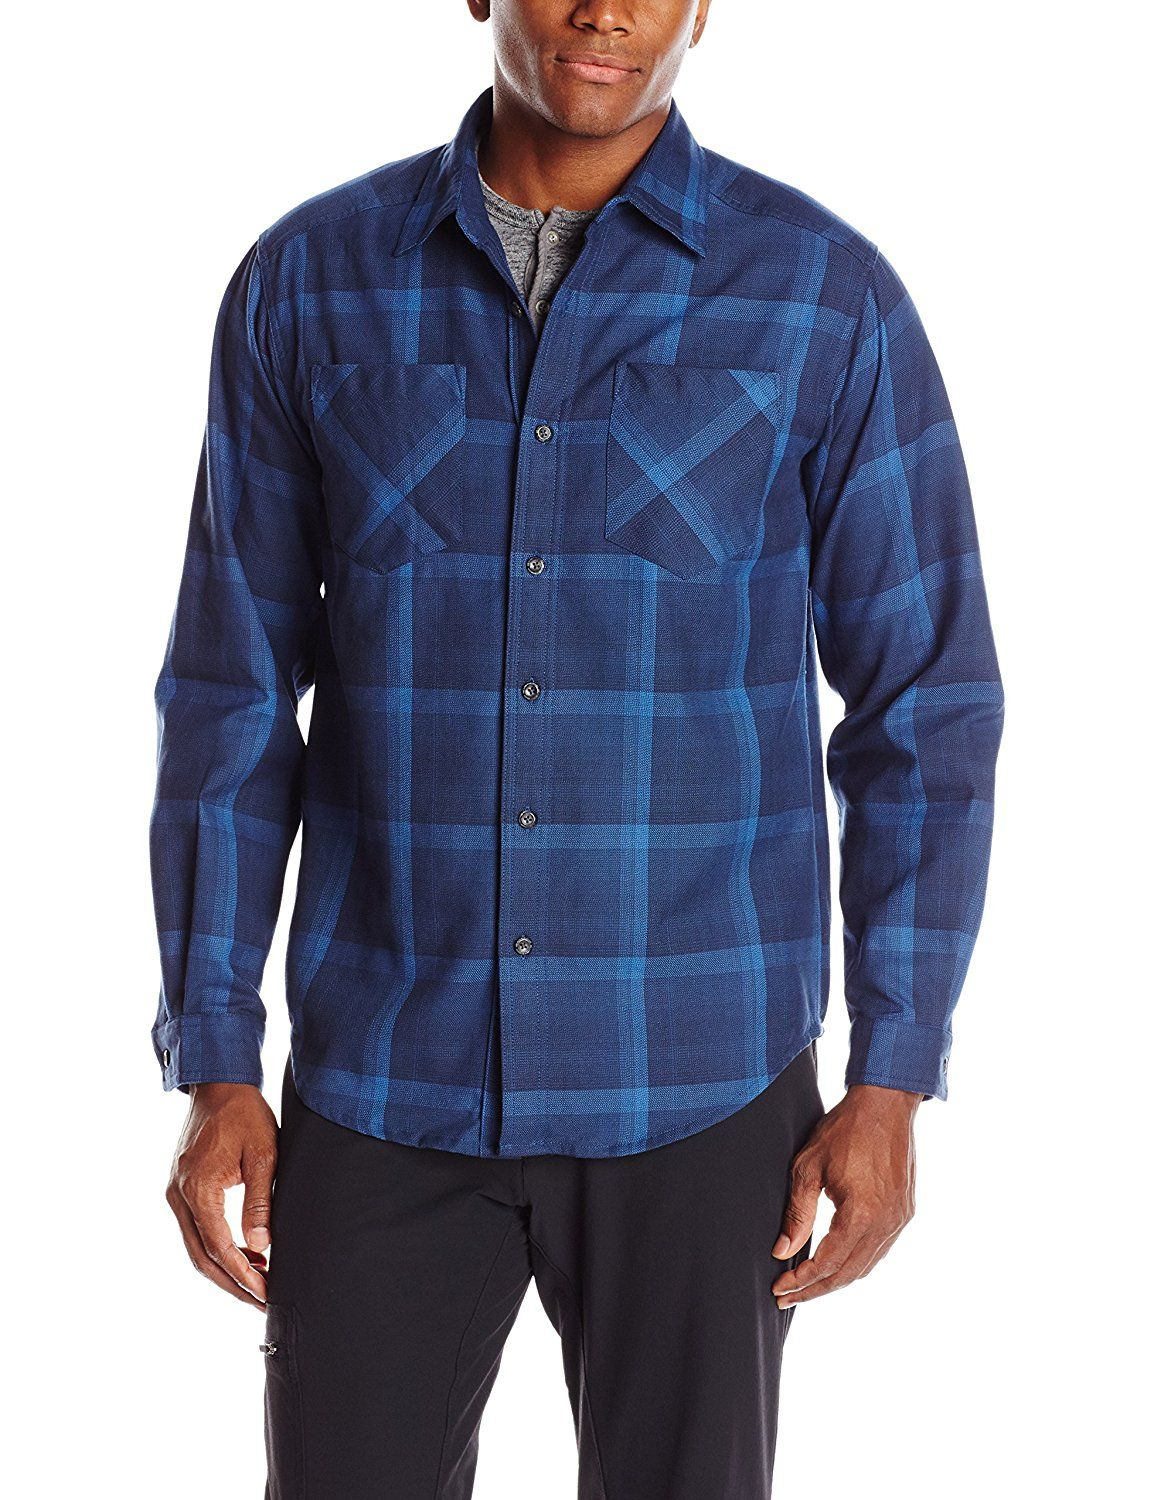 ExOfficio Mens Geode Flannel Long Sleeve Shirt